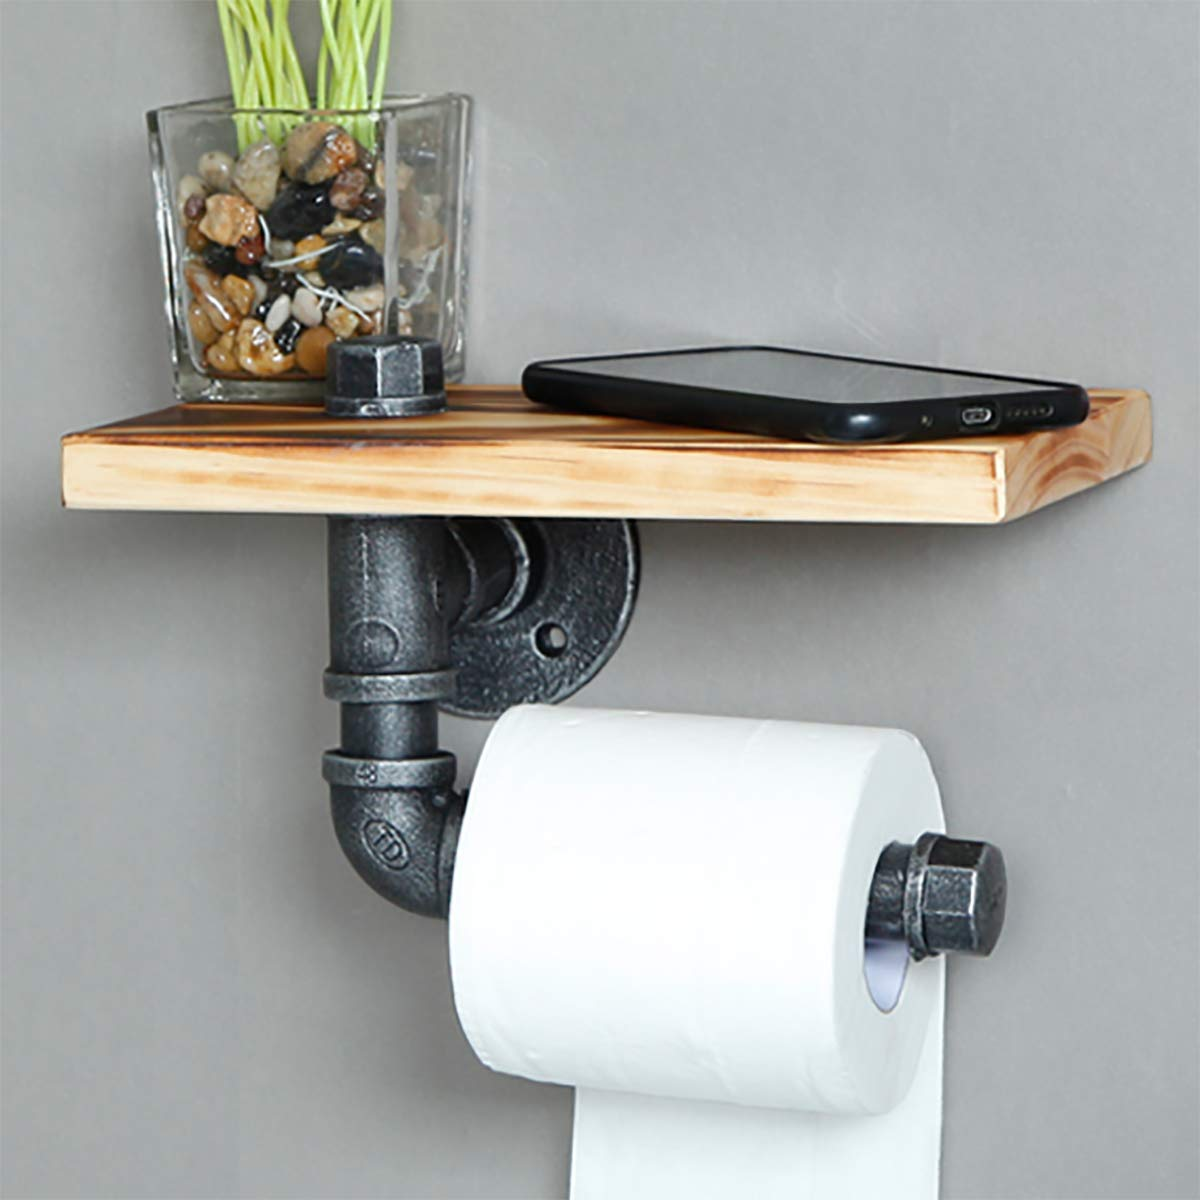 Industrial Retro Pipe Bathroom Wall-mounted Shelf Tissue Roll Hanger,Towel Rack,Clothes Rack,Kitchen Wine Rack,Toilet Paper Holder 9.8 inch by HANS CAO